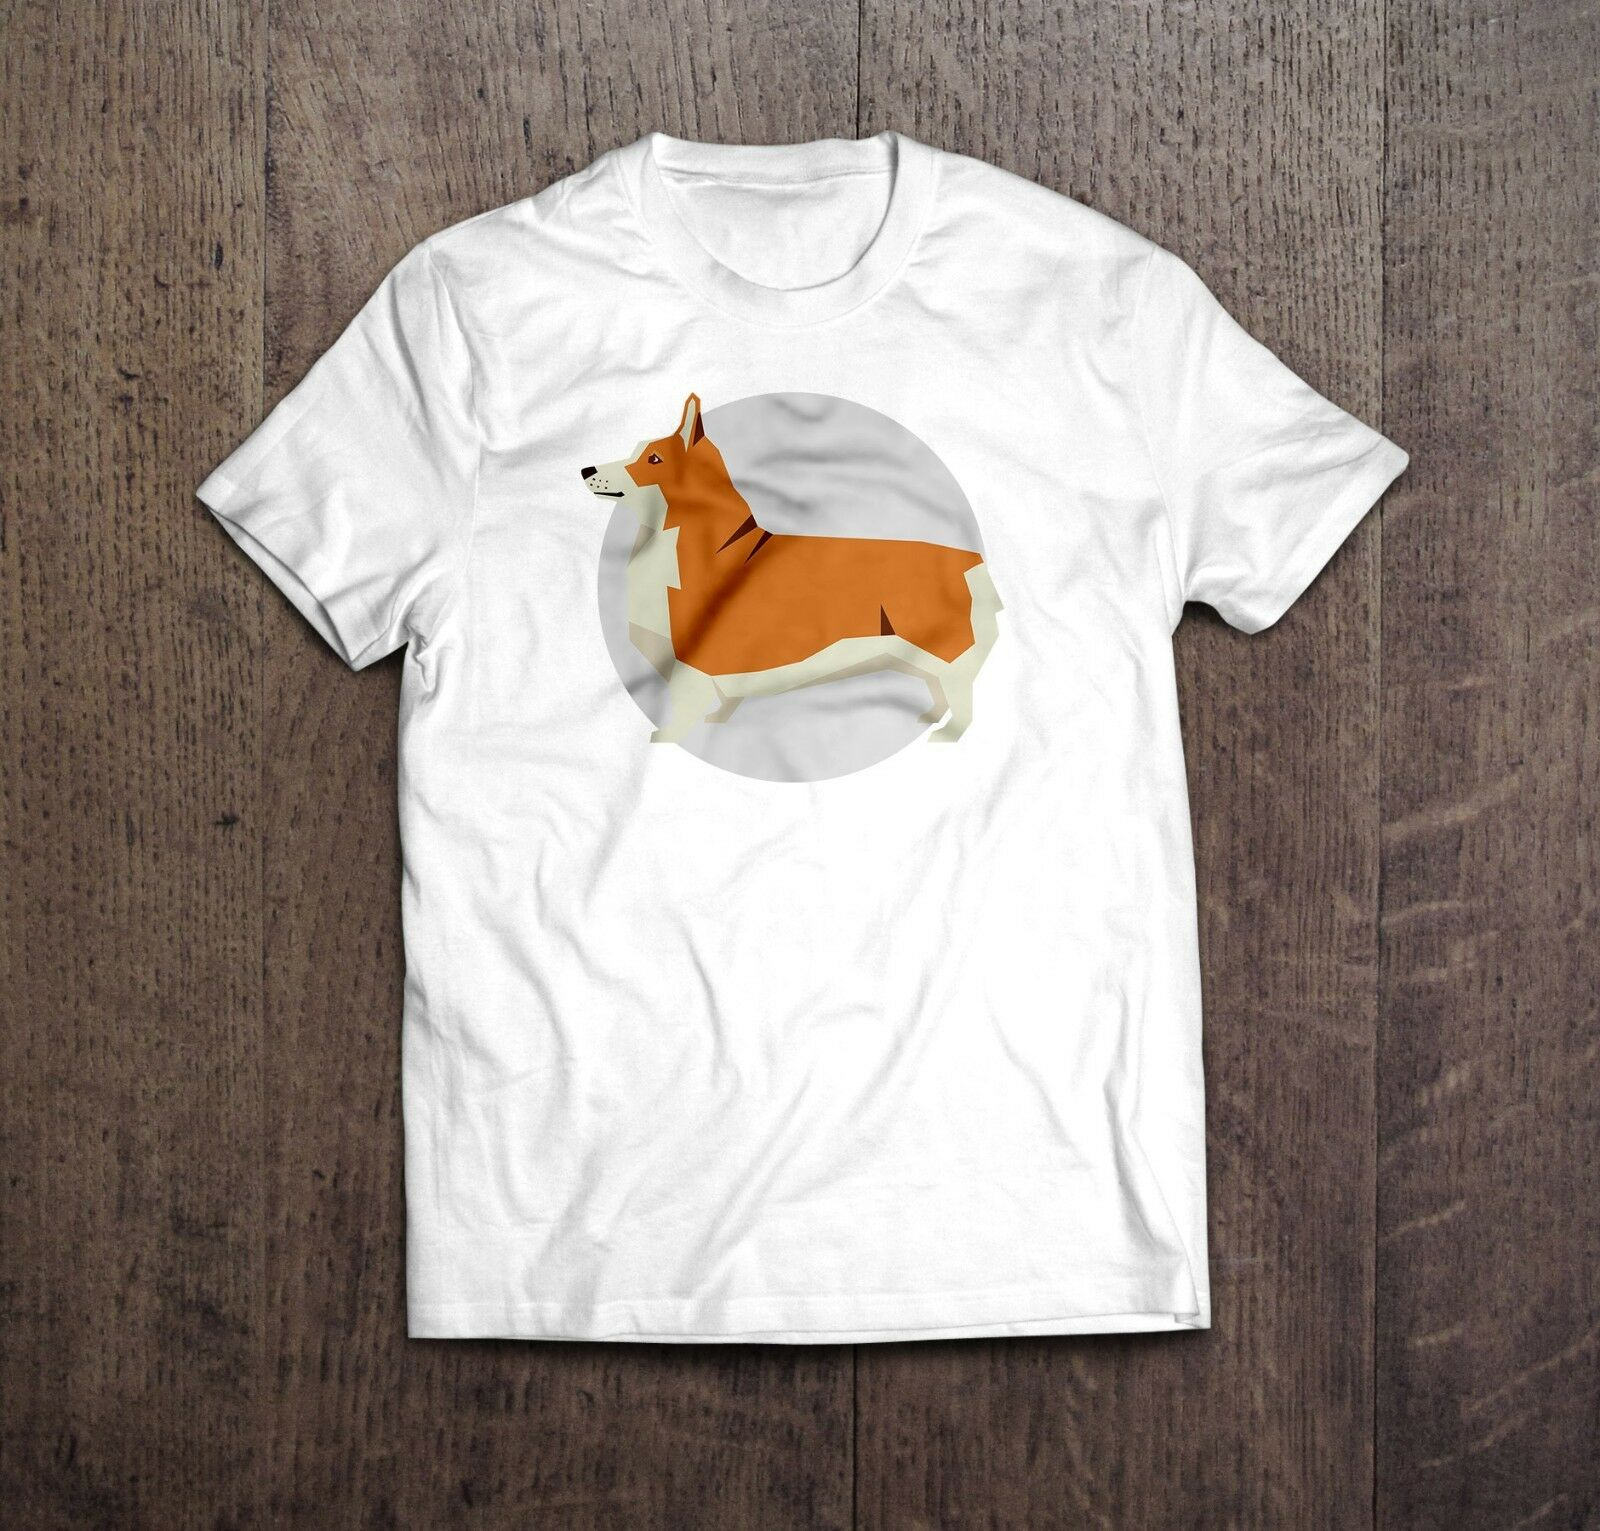 2019 Cool Pembroke Welsh Corgi Hond T-shirt In Zwart Of Wit. Super Cool Hoge Kwaliteit Tee. Tee